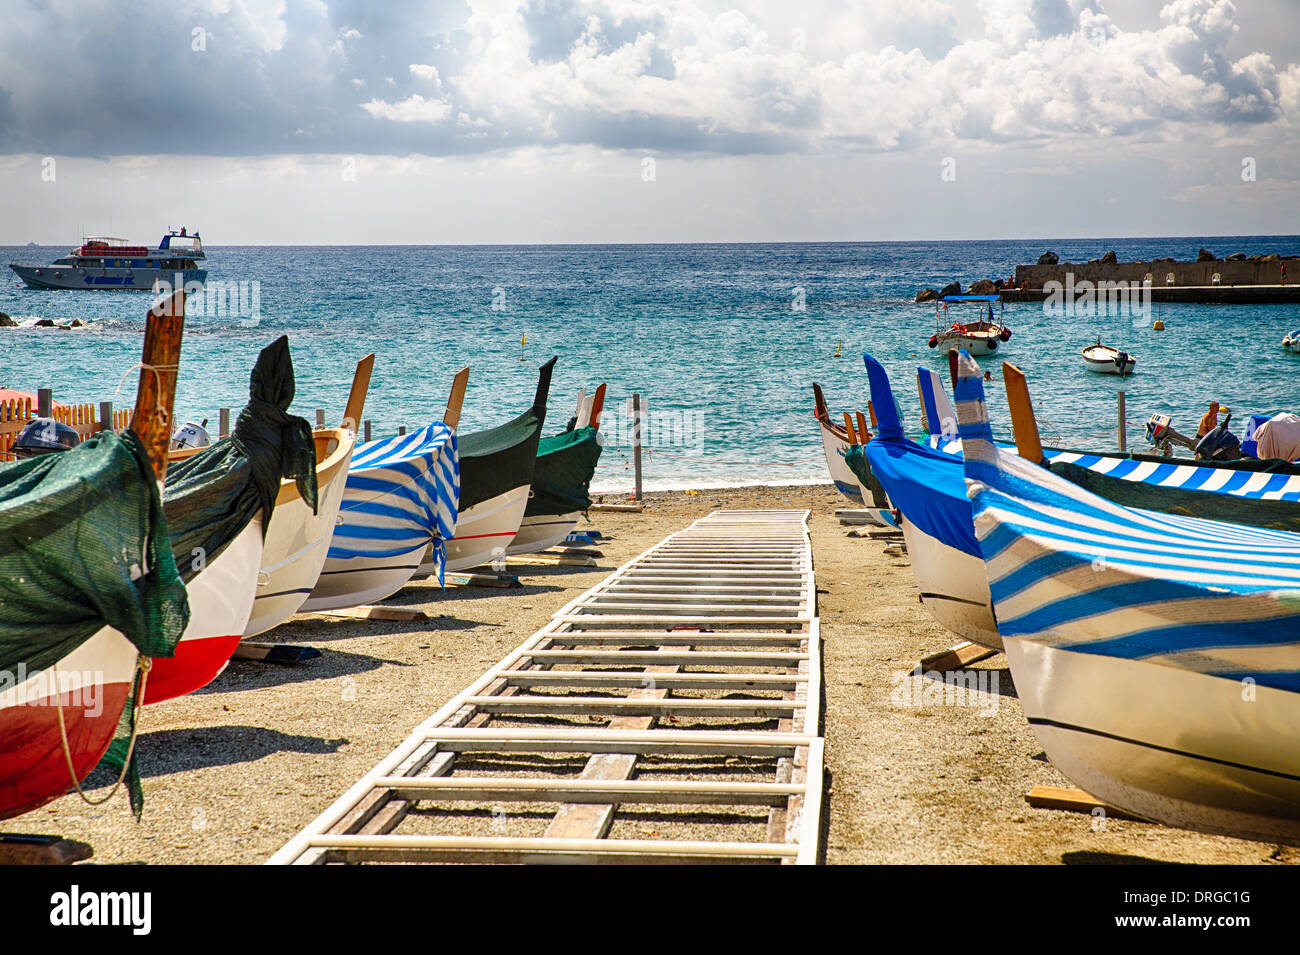 Row of Traditional Boats on the Shore, Monterosso Al Mare, Cinque Terre, Liguria, Italy - Stock Image